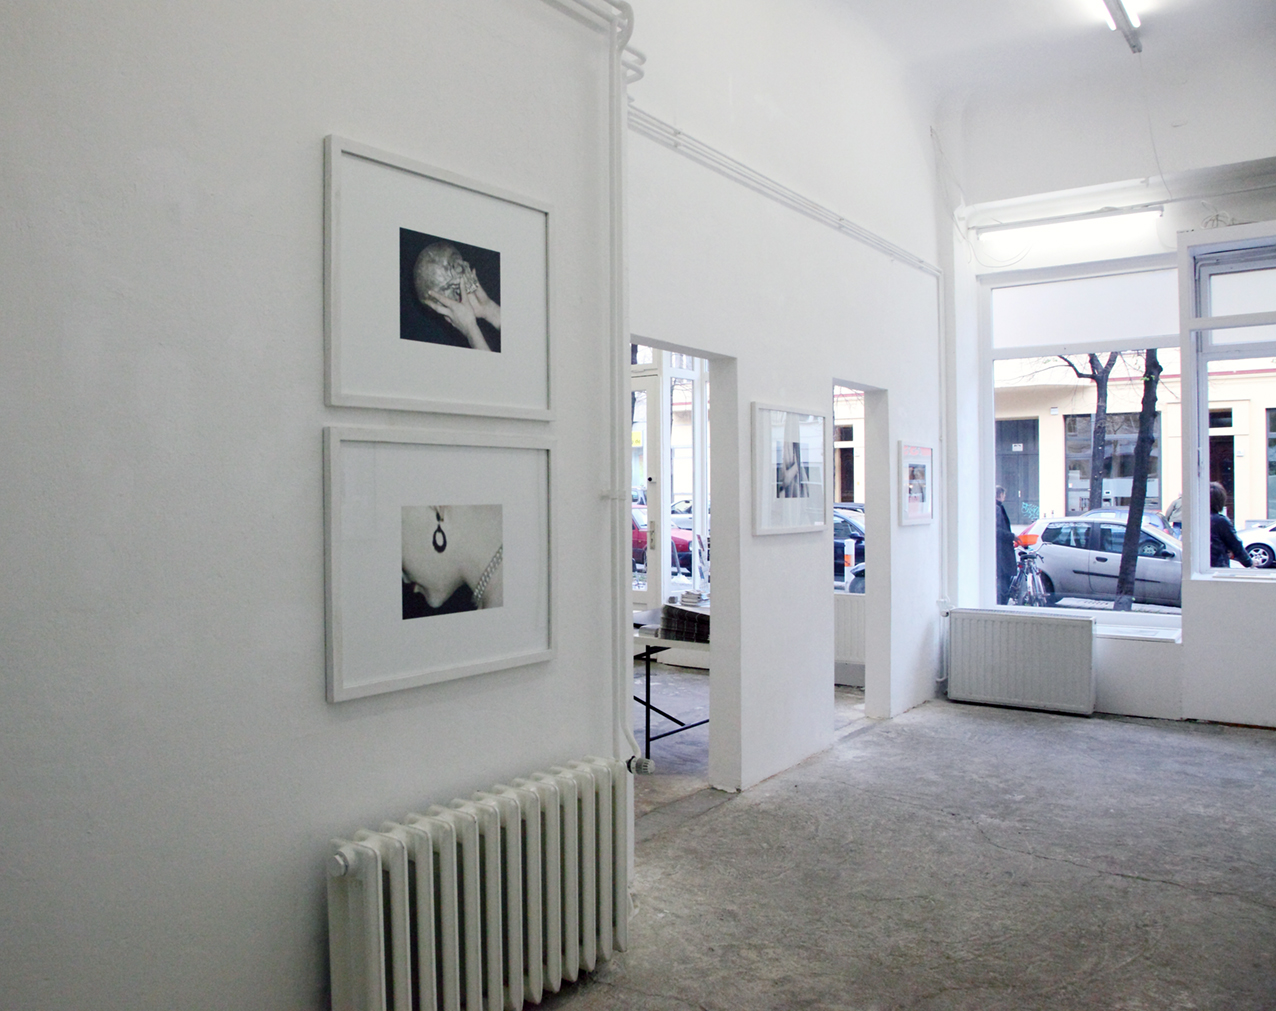 Exhibition view, gallery en passant, berlin